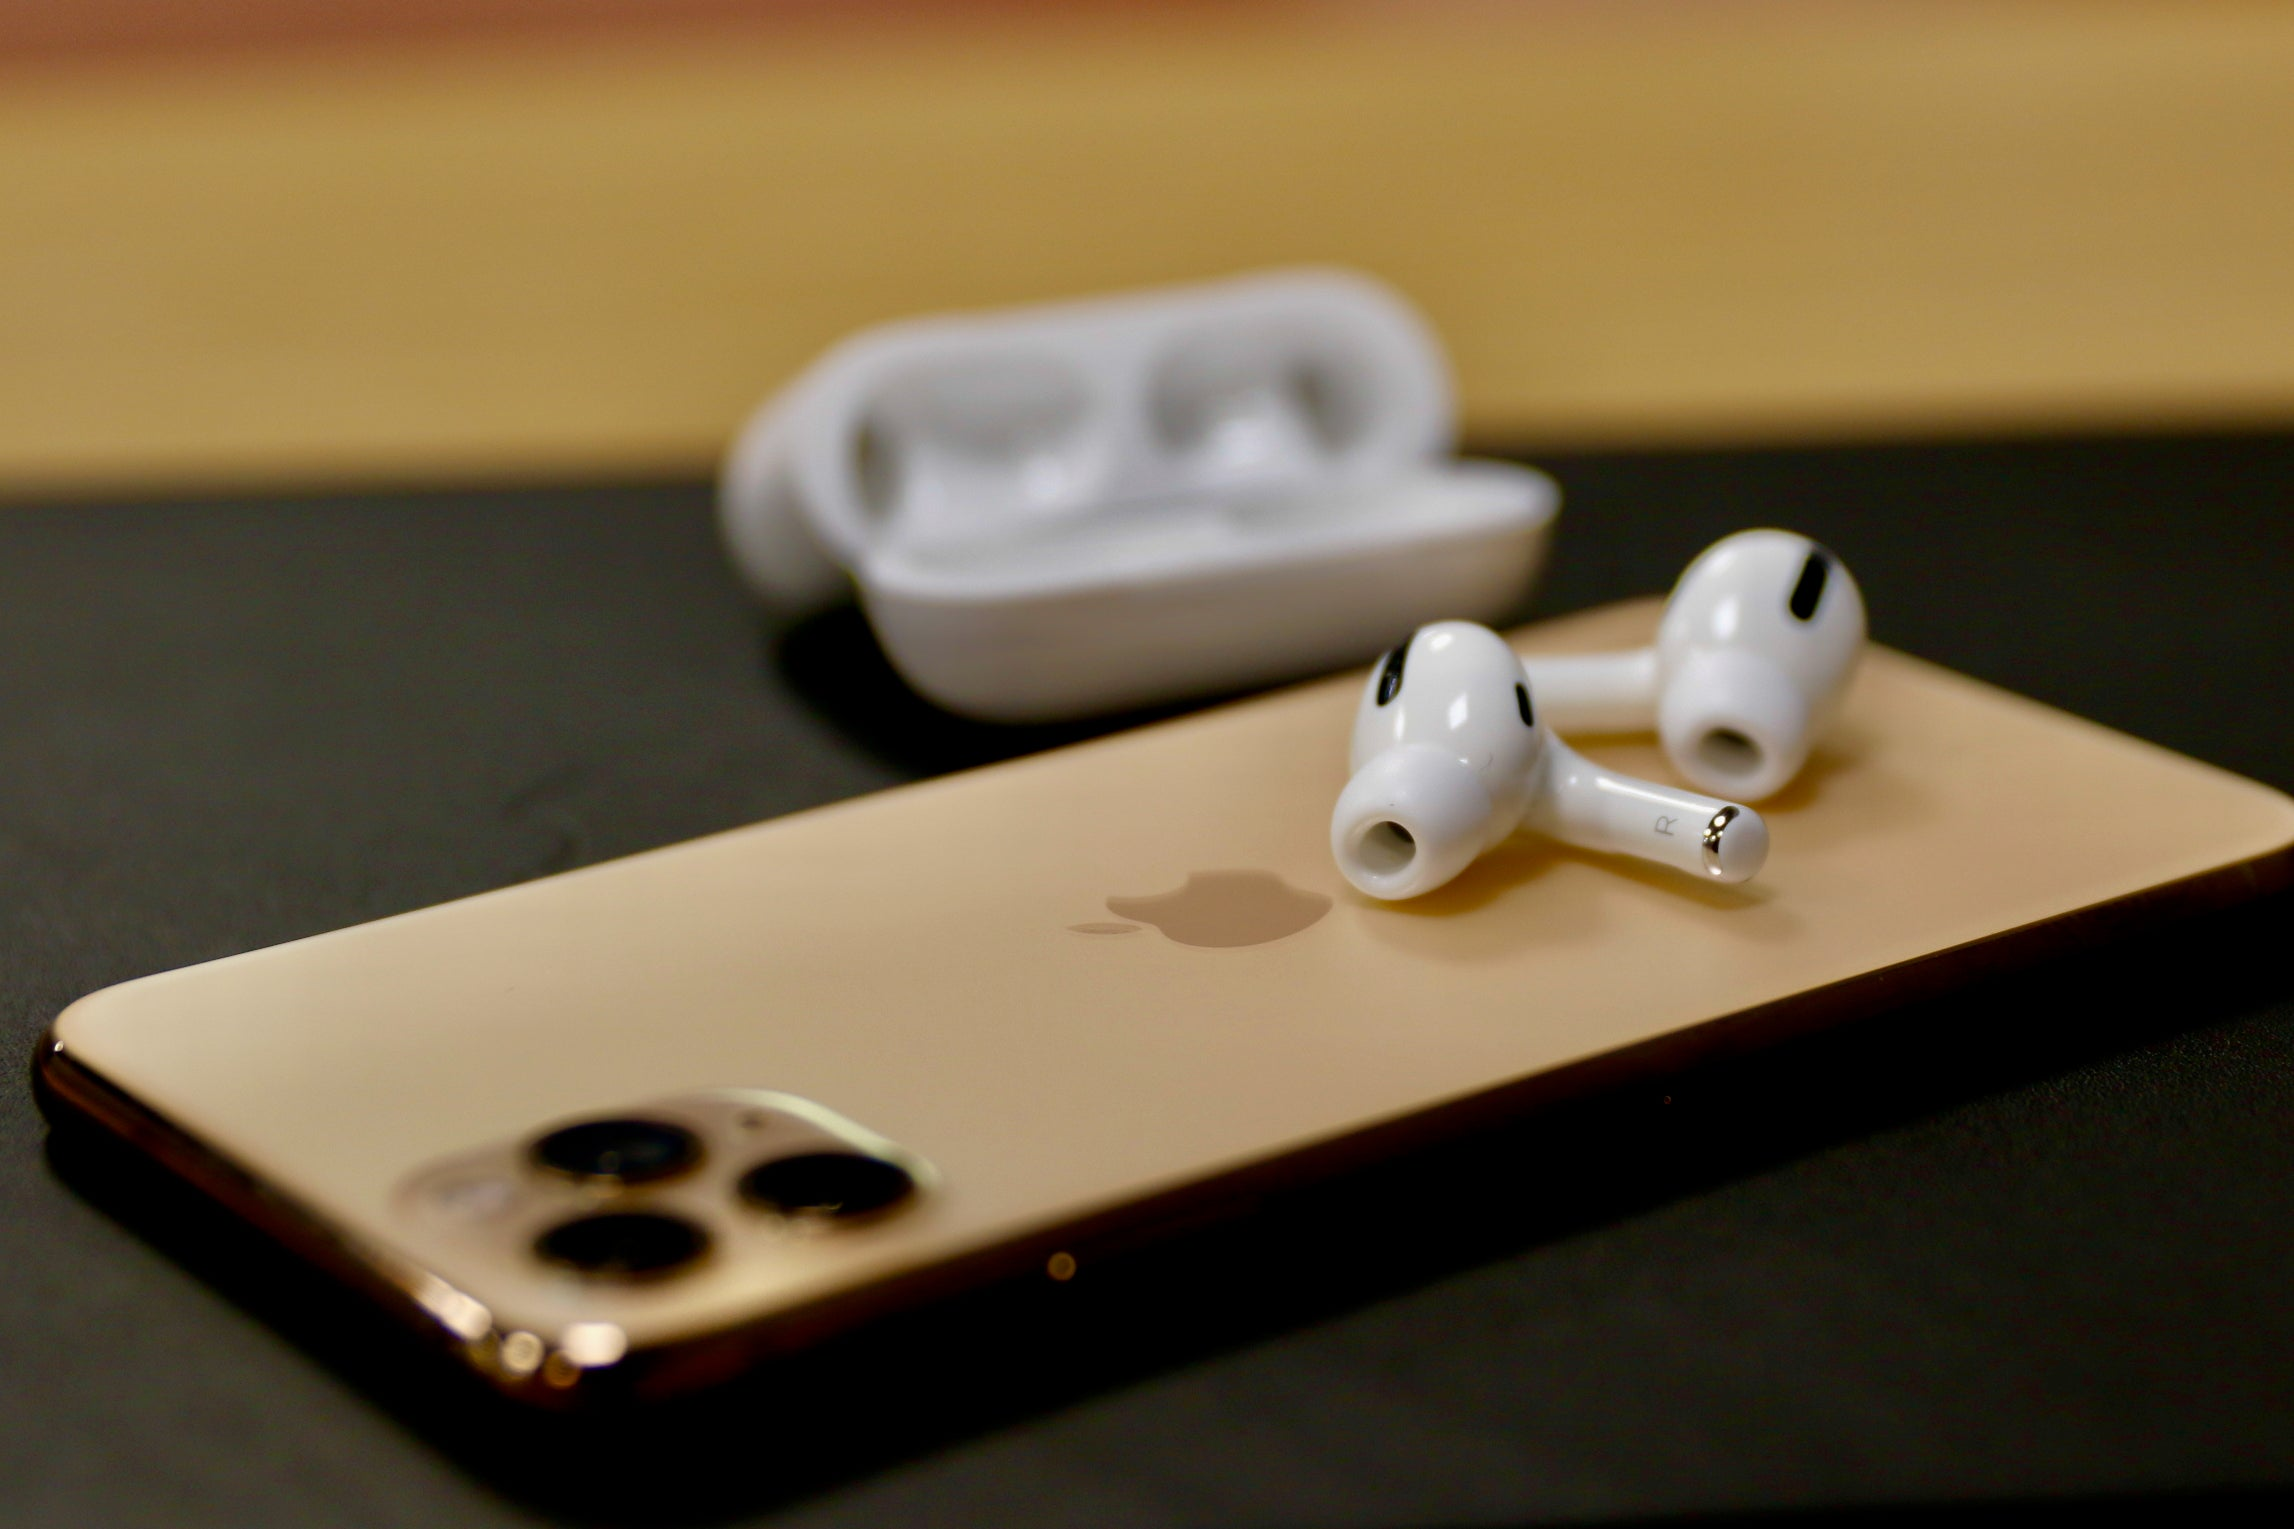 iPhone and iPad users could get a huge Netflix boost, thanks to AirPods Pro | Trusted Reviews